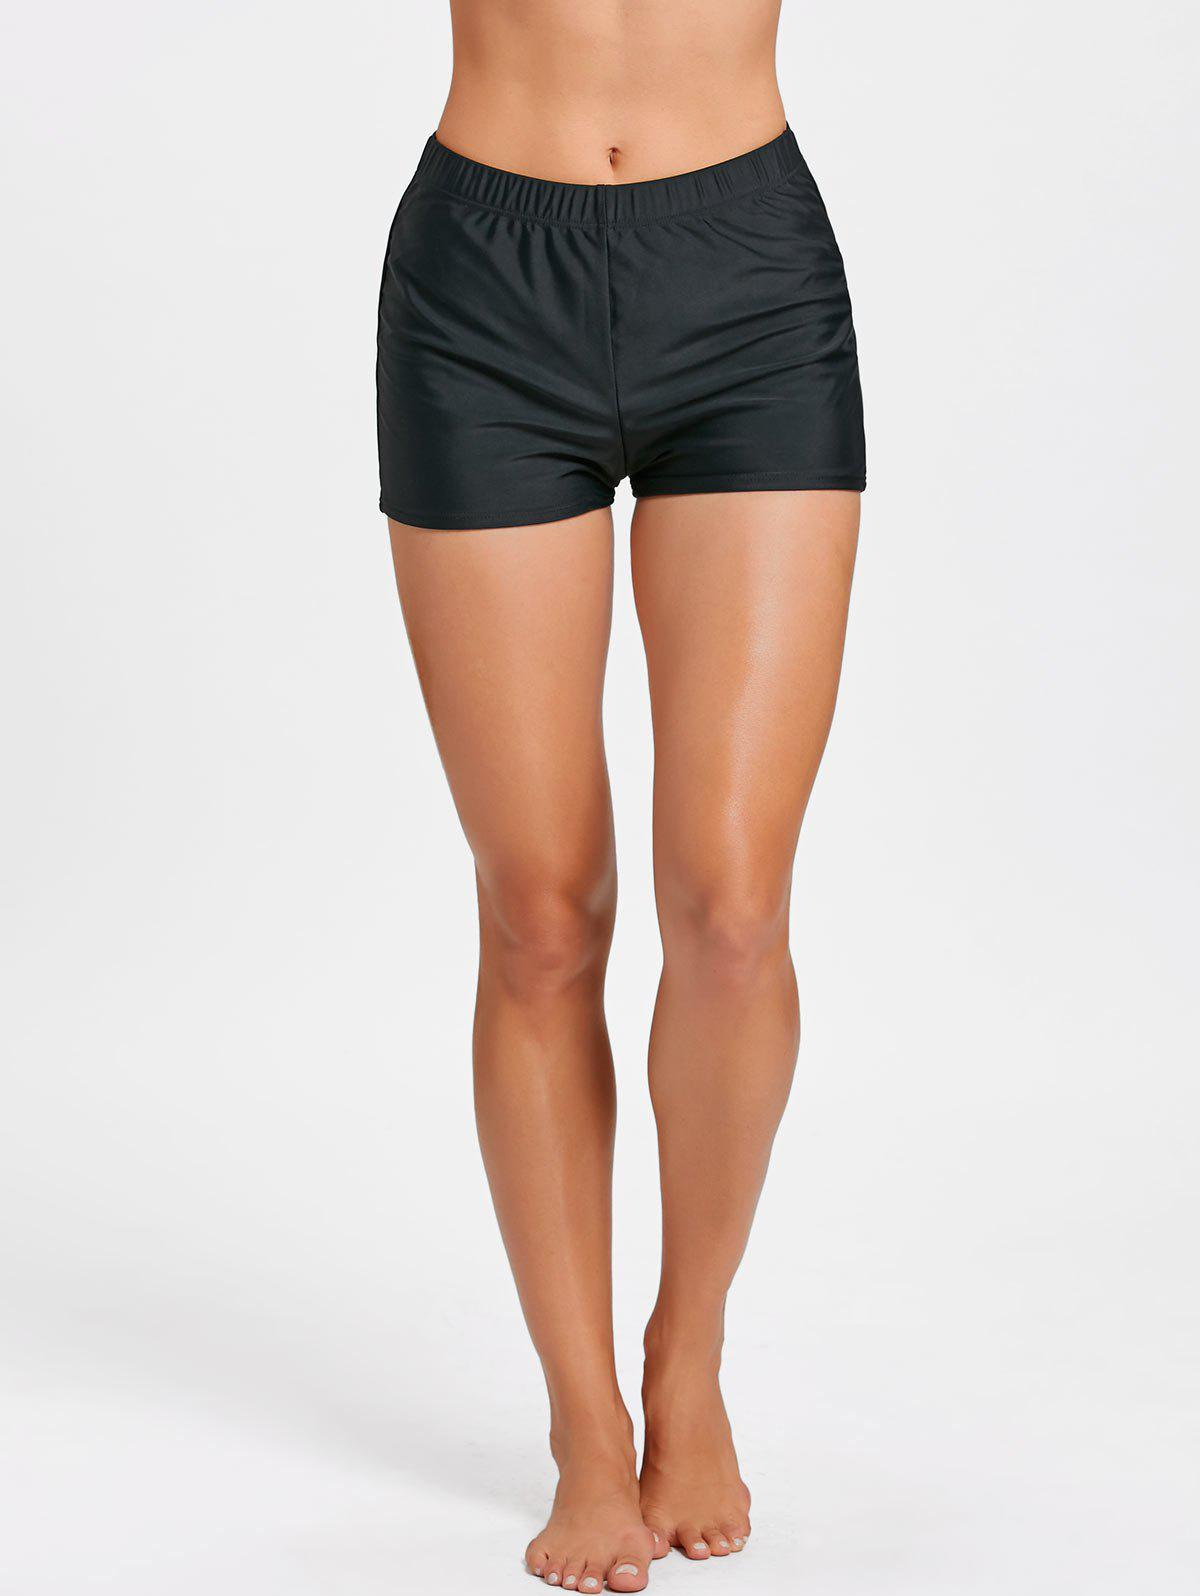 Beachwear Boxer Boyshort Swim Bottom - BLACK L